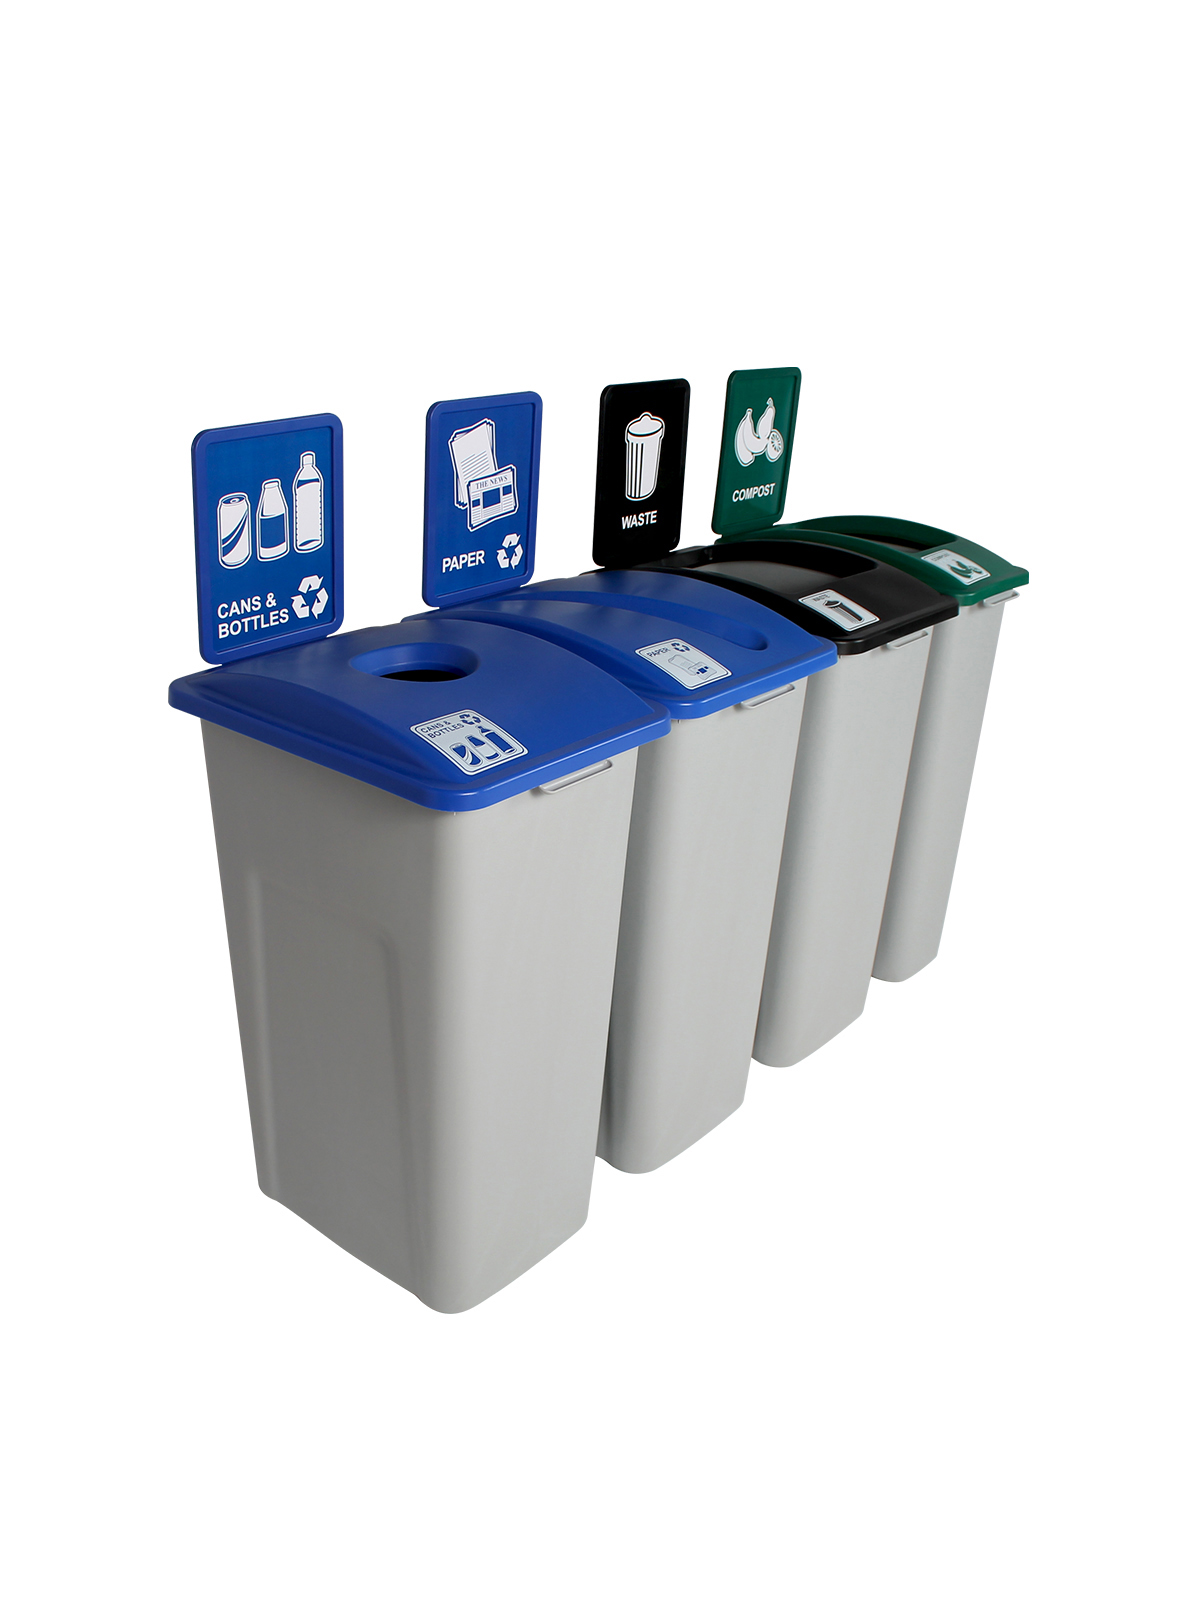 KIT XL QUAD - BDY/LID/SF - GRY/BLU/BLU/GRN/BLK CANS & BOTTLES/PAPER/COMPOST/WASTE